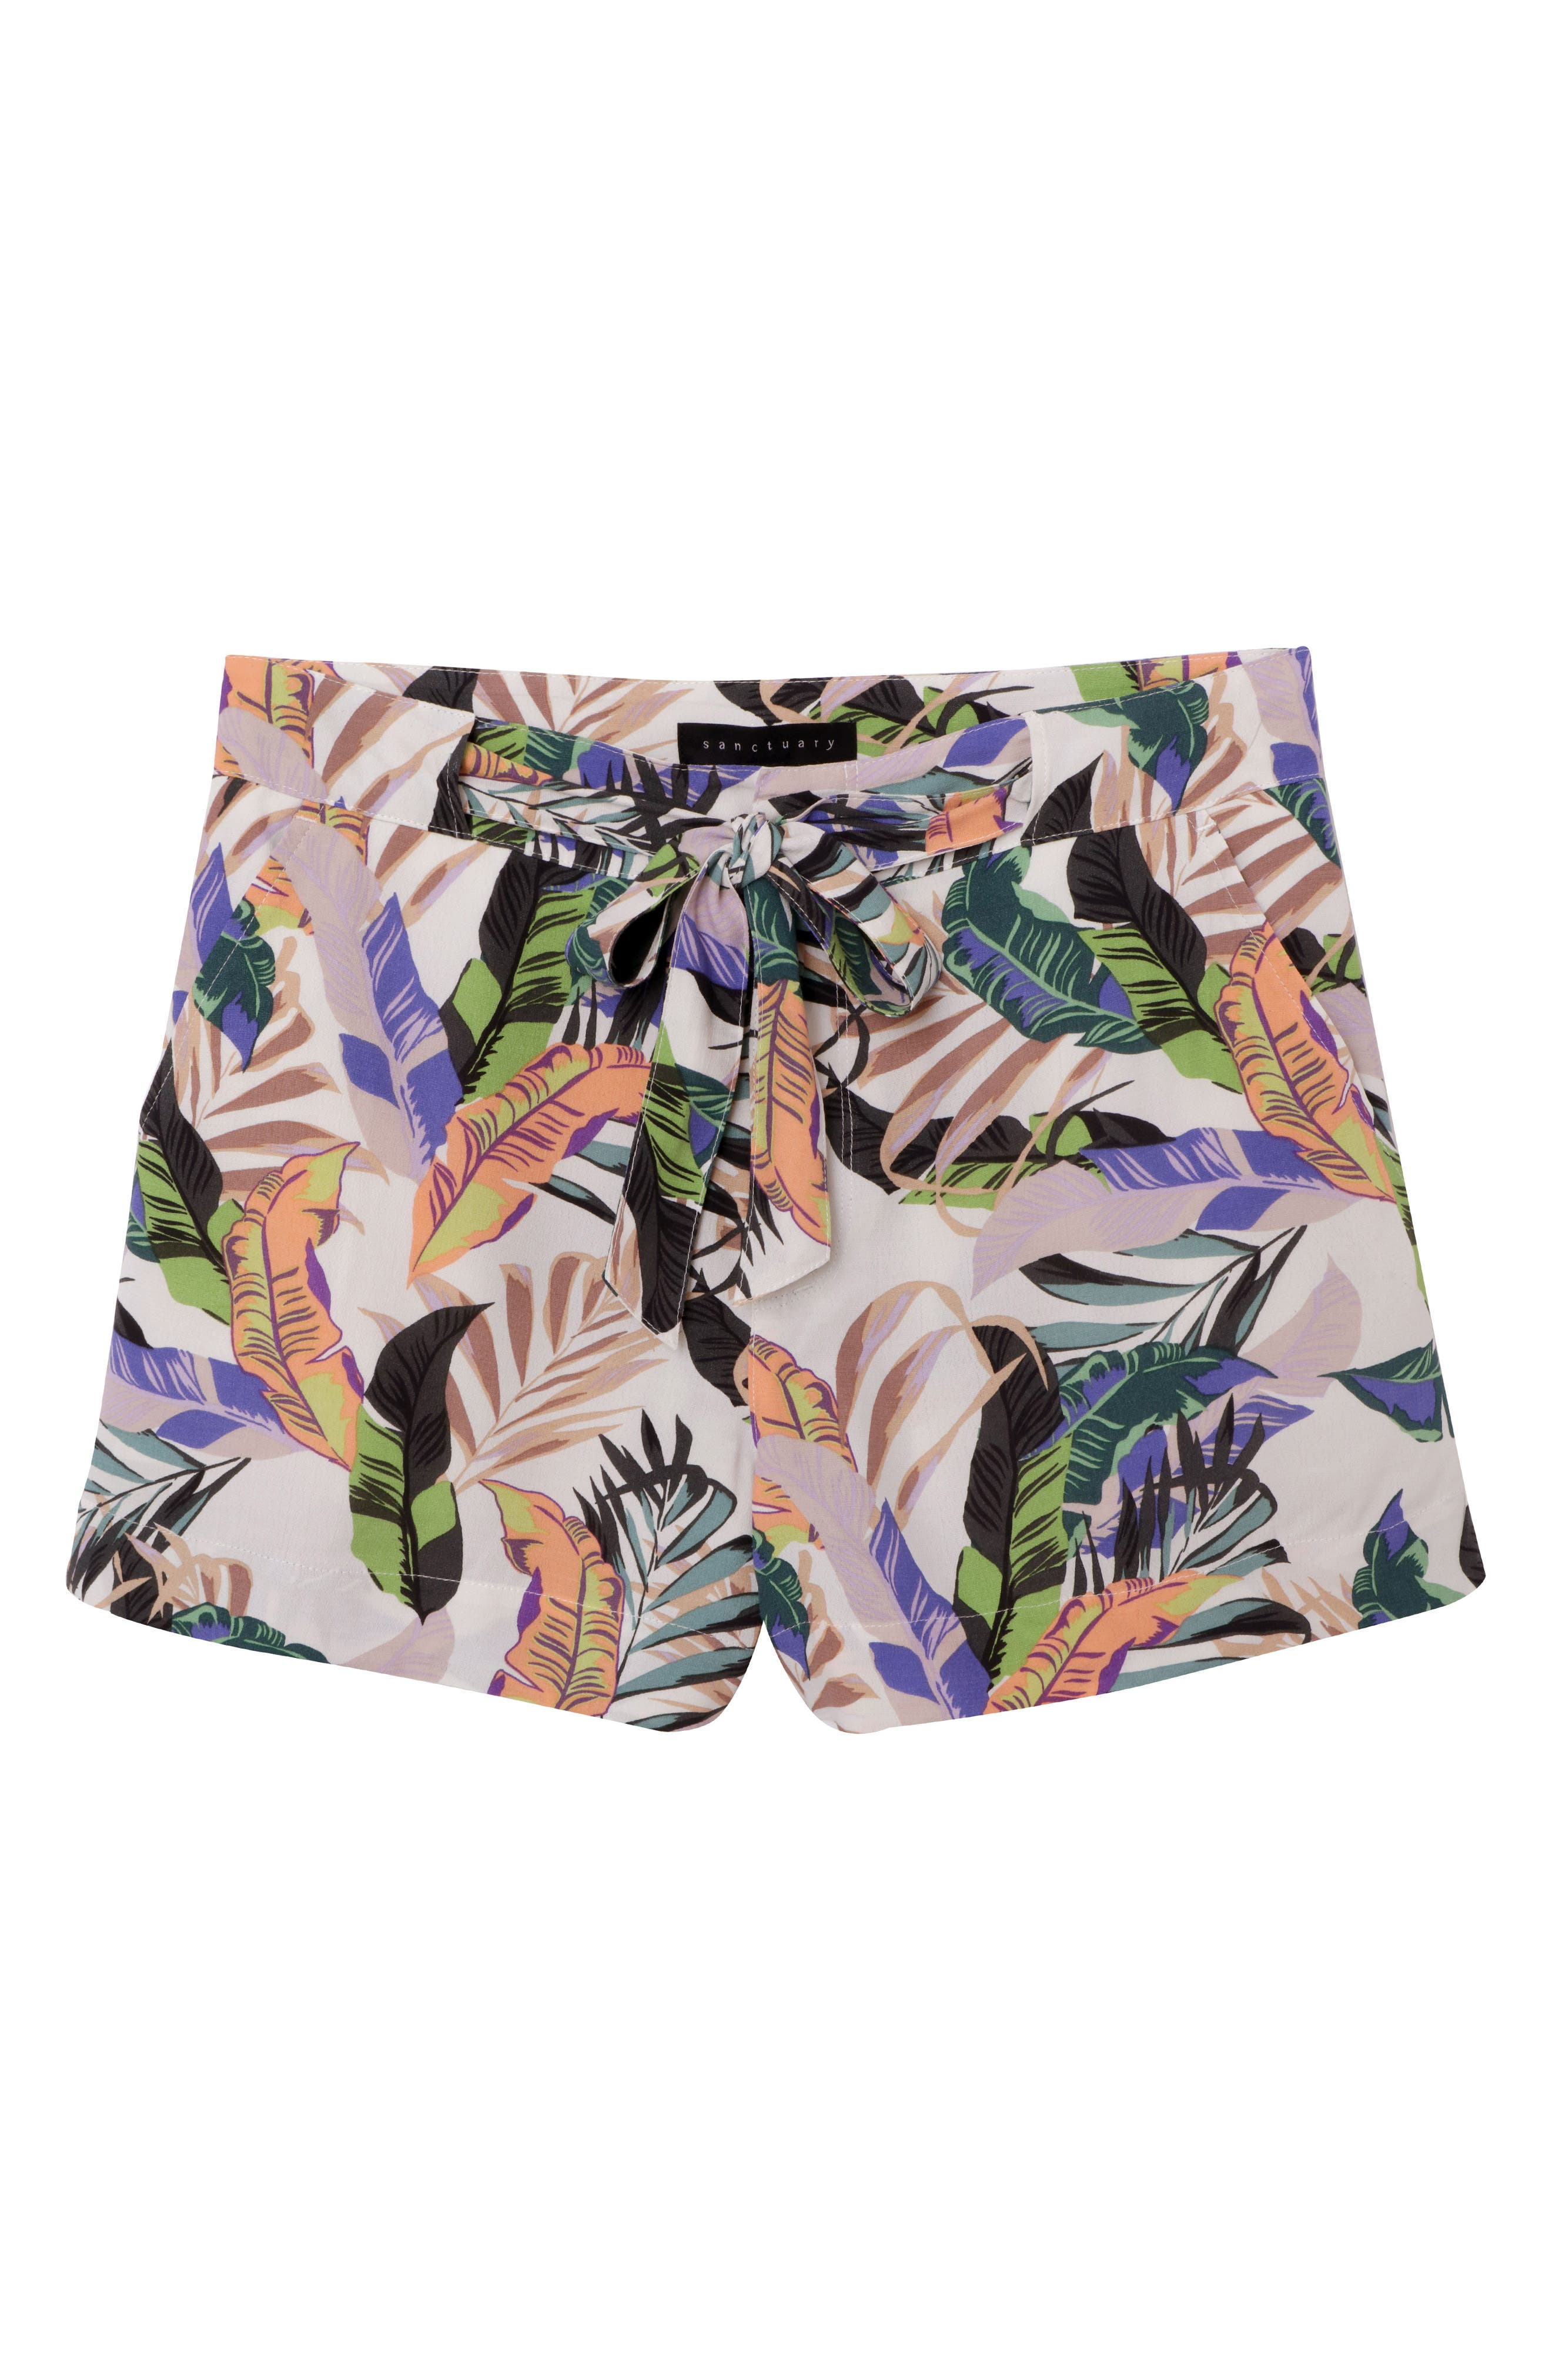 Wild Flower Shorts,                             Alternate thumbnail 4, color,                             193